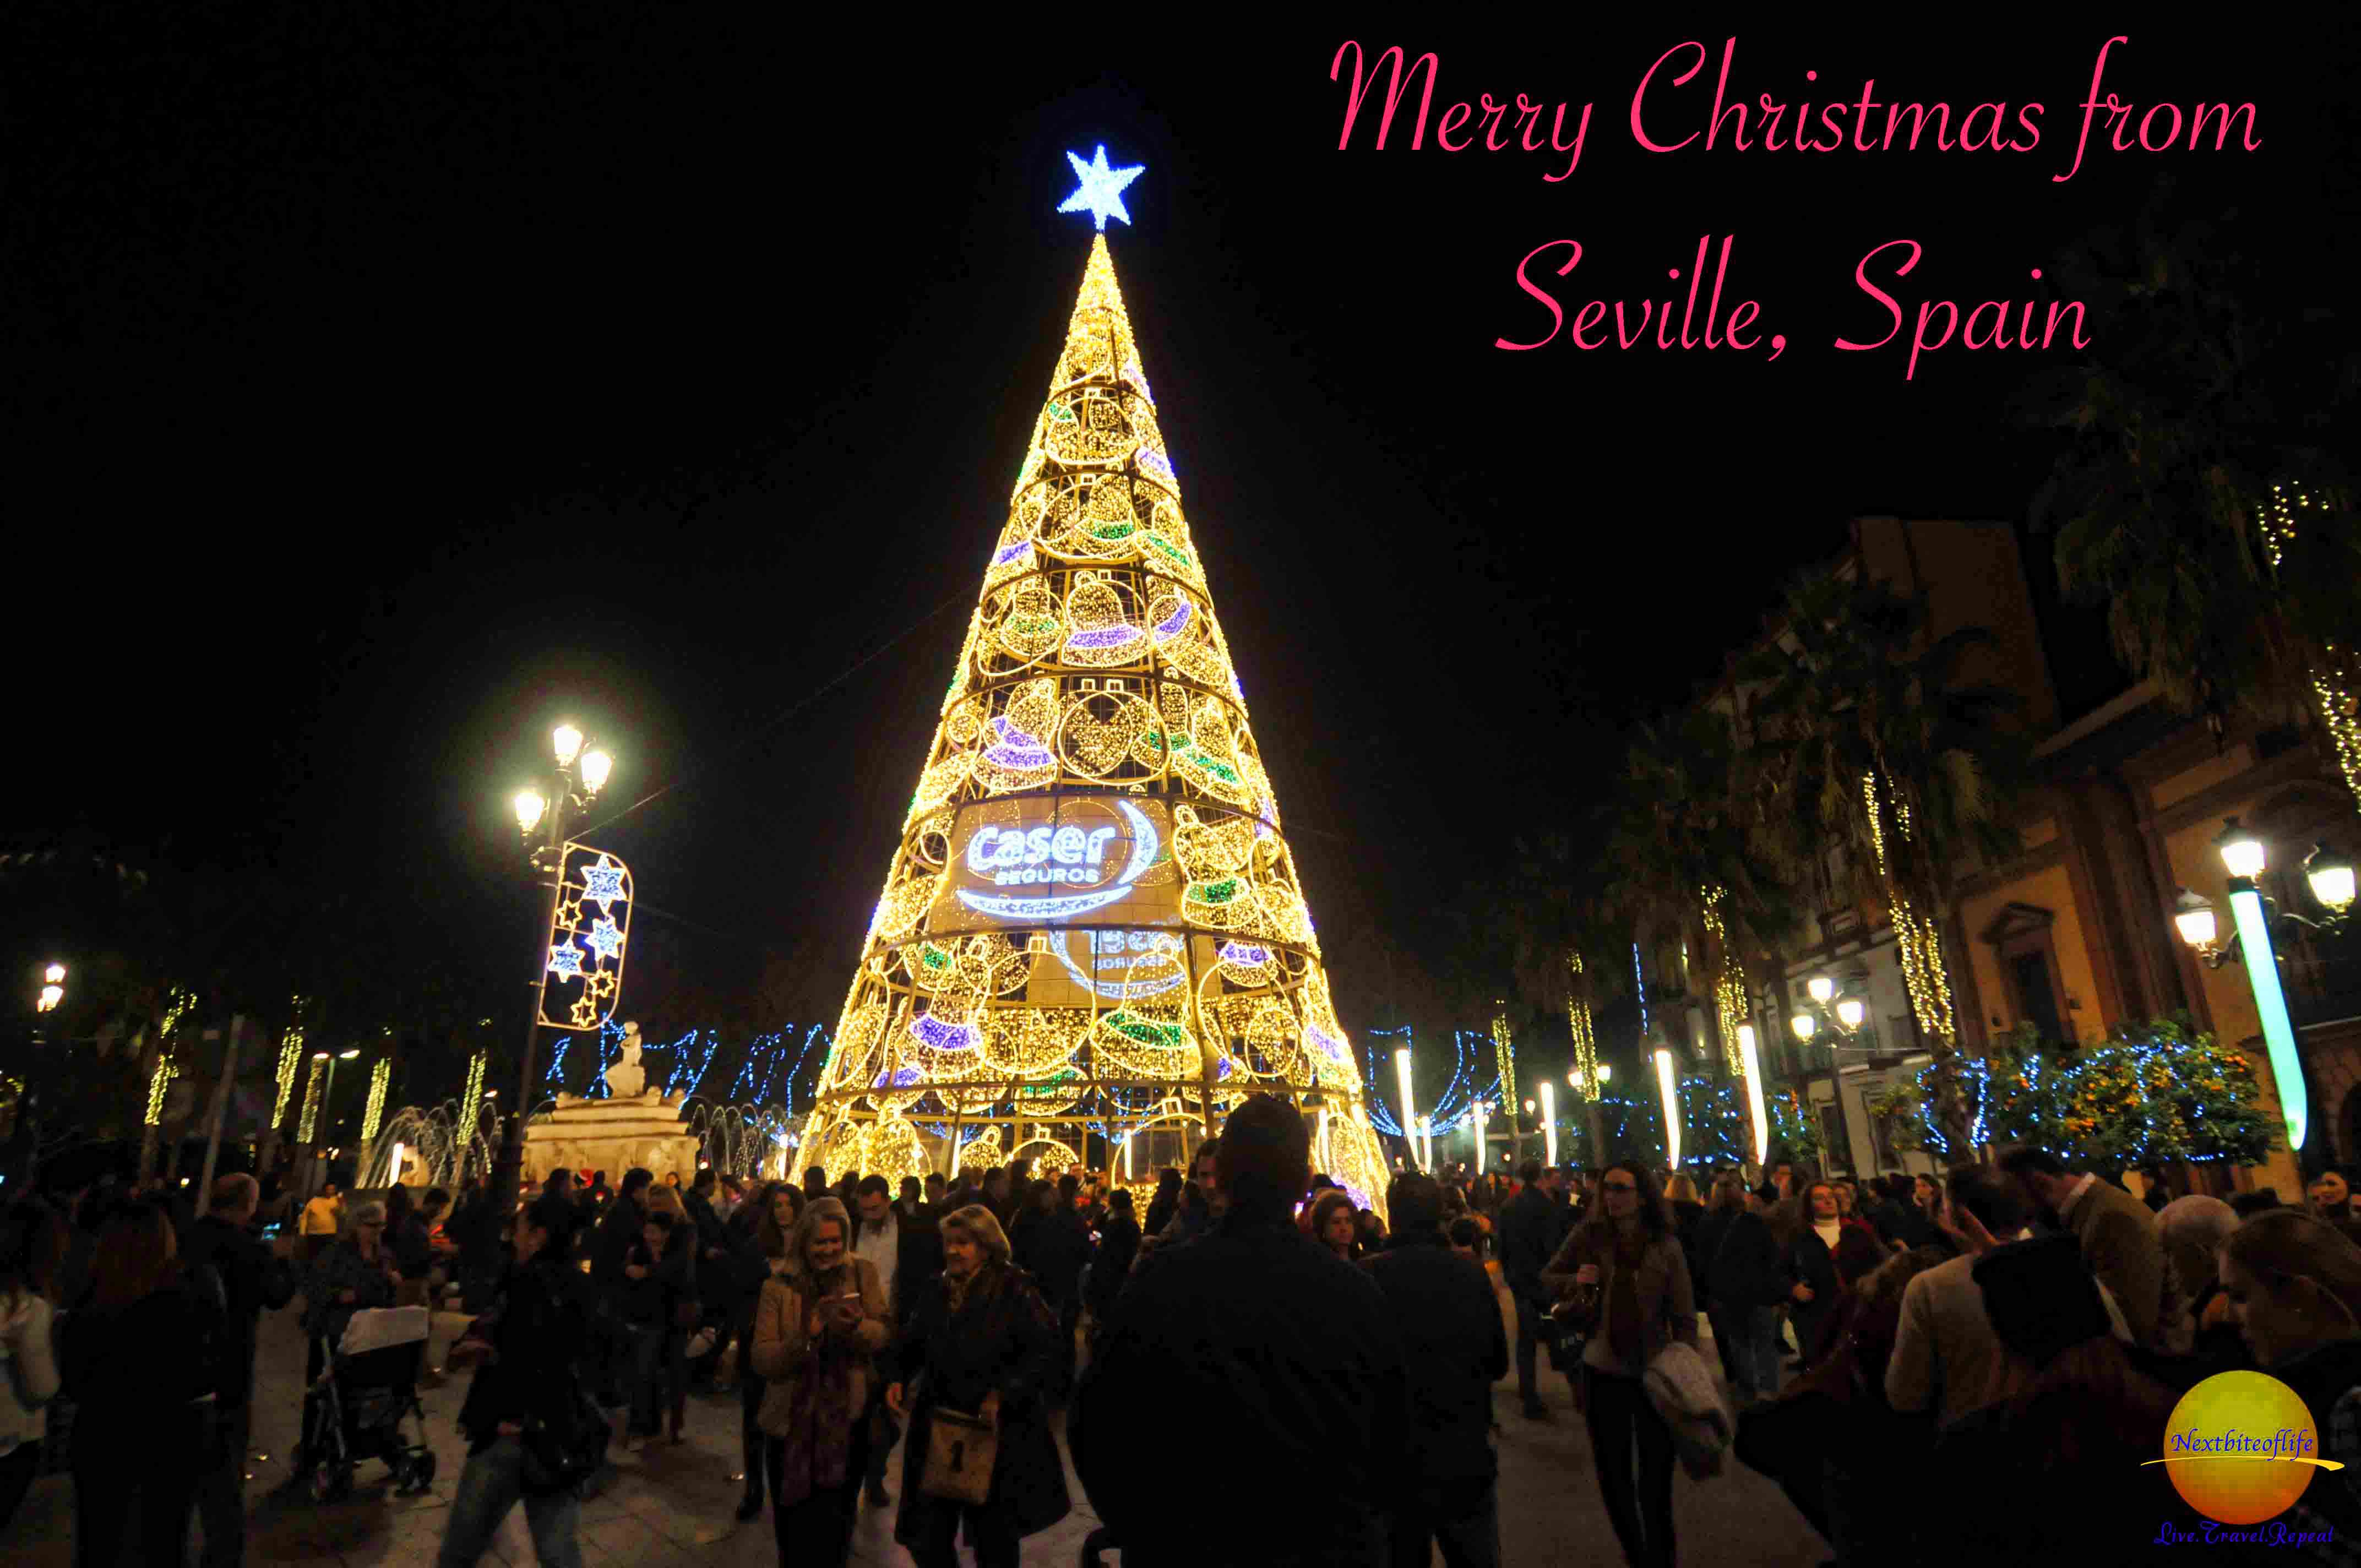 Christmas Spain.Christmas In Seville Spain A Night Stroll Nextbiteoflife